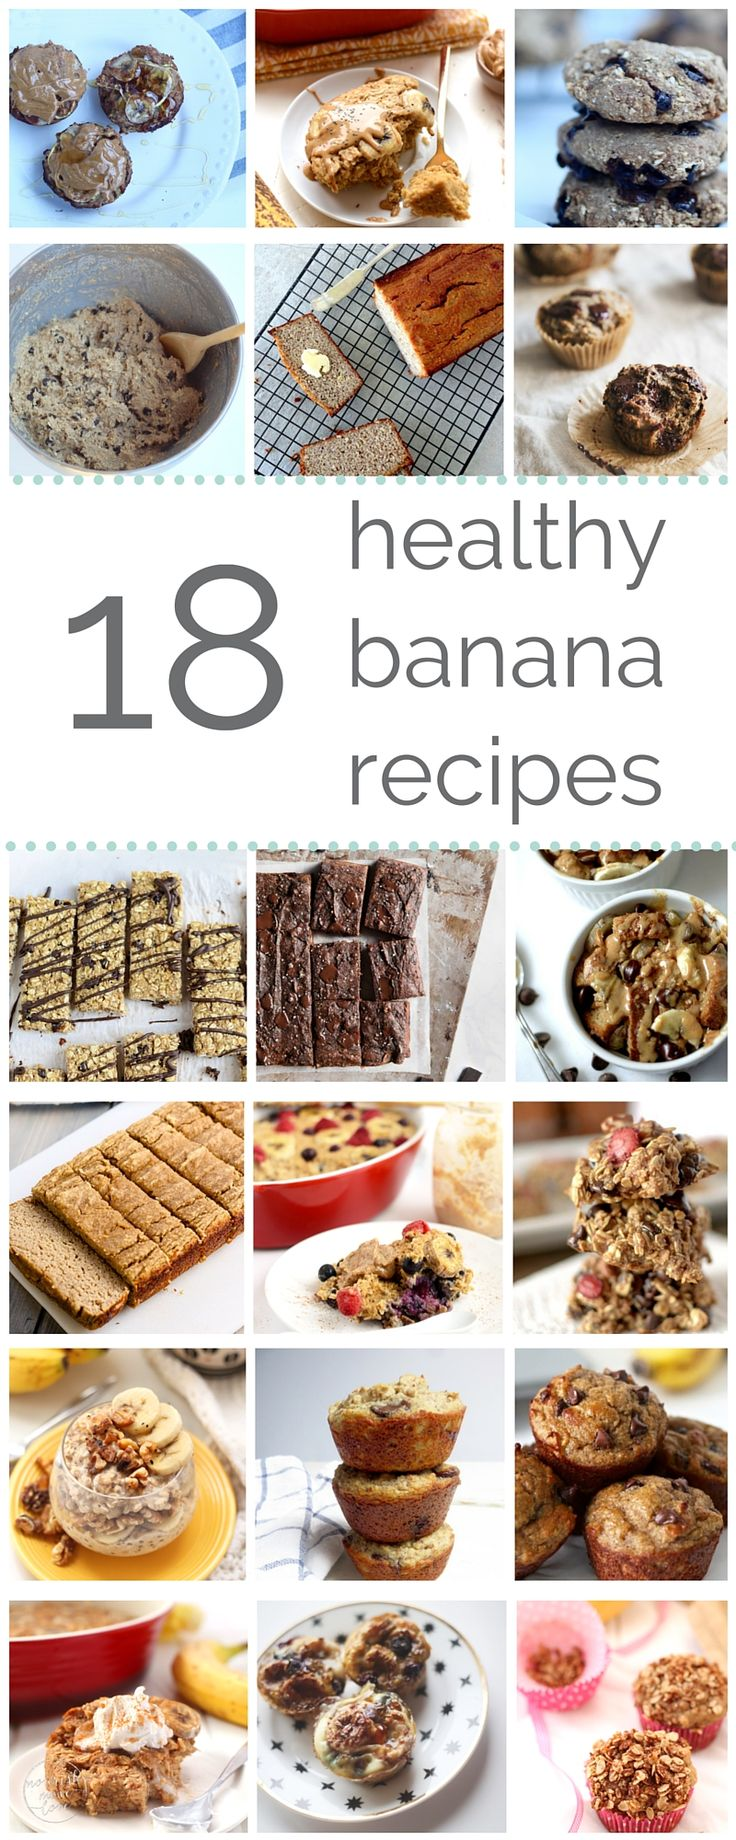 18 healthy banana recipes to satisfy your carb cravings | go bananas with these 18 deliciously healthy ways to use over-ripe bananas. from double chocolate banana bread to peanut butter banana oatmeal bake, these recipes are sure to satisfy all your carb cravings {guilt and gluten-free}! | banana bread I banana recipes I healthy desserts I healthy banana bread I healthy baking II Nourish Move Love #bananabread #dessertrecipes #snacks